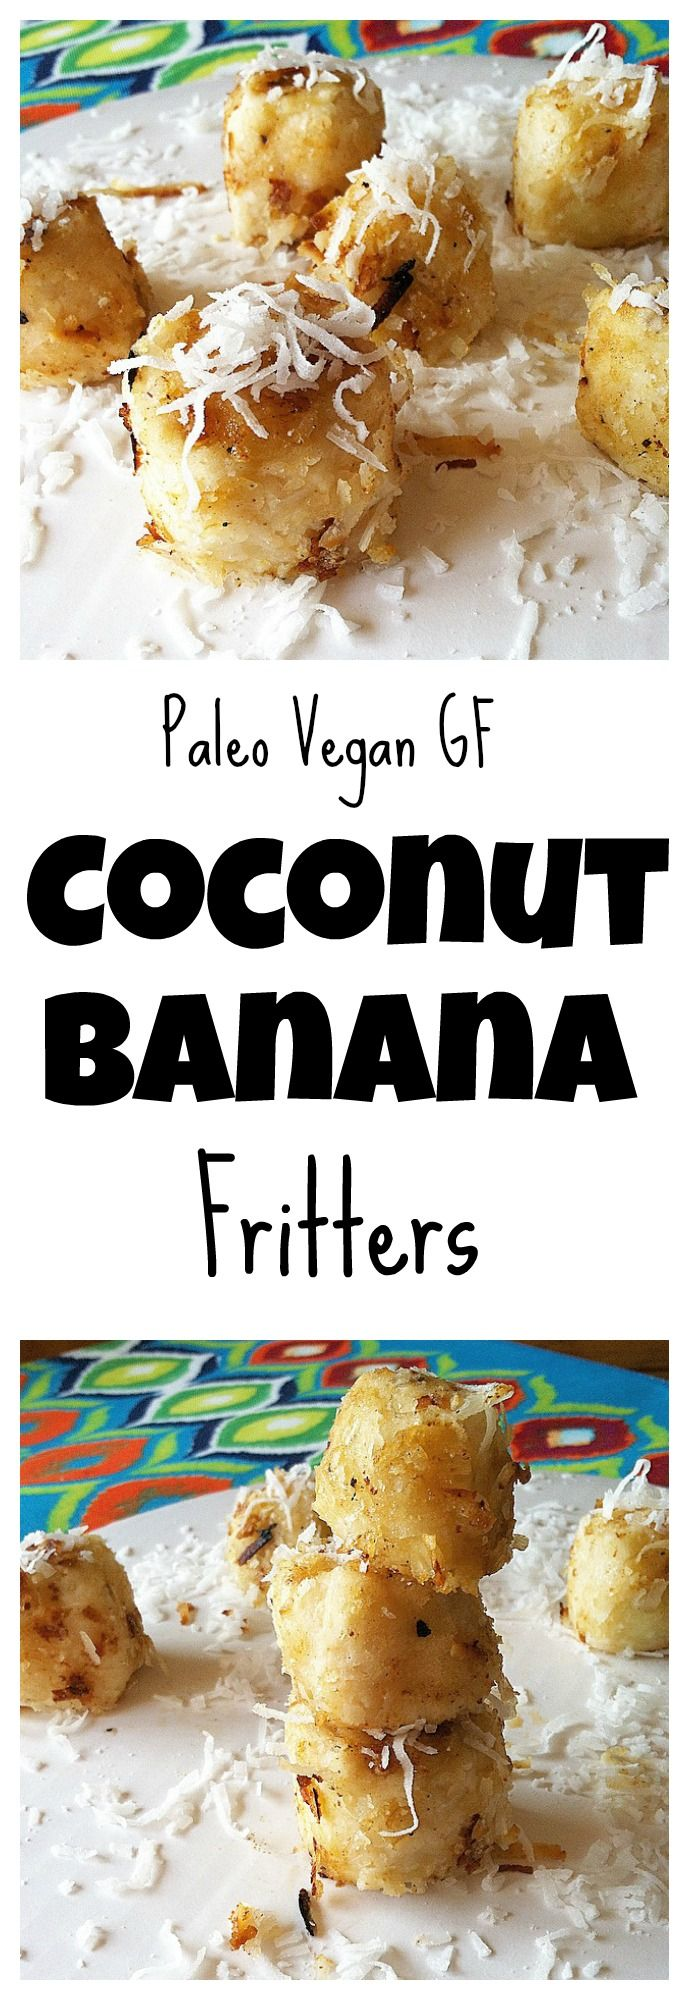 #healthy Coconut Banana Fritters are extremely easy to make and are the perfect snack! #paleo #vegan #glutenfree